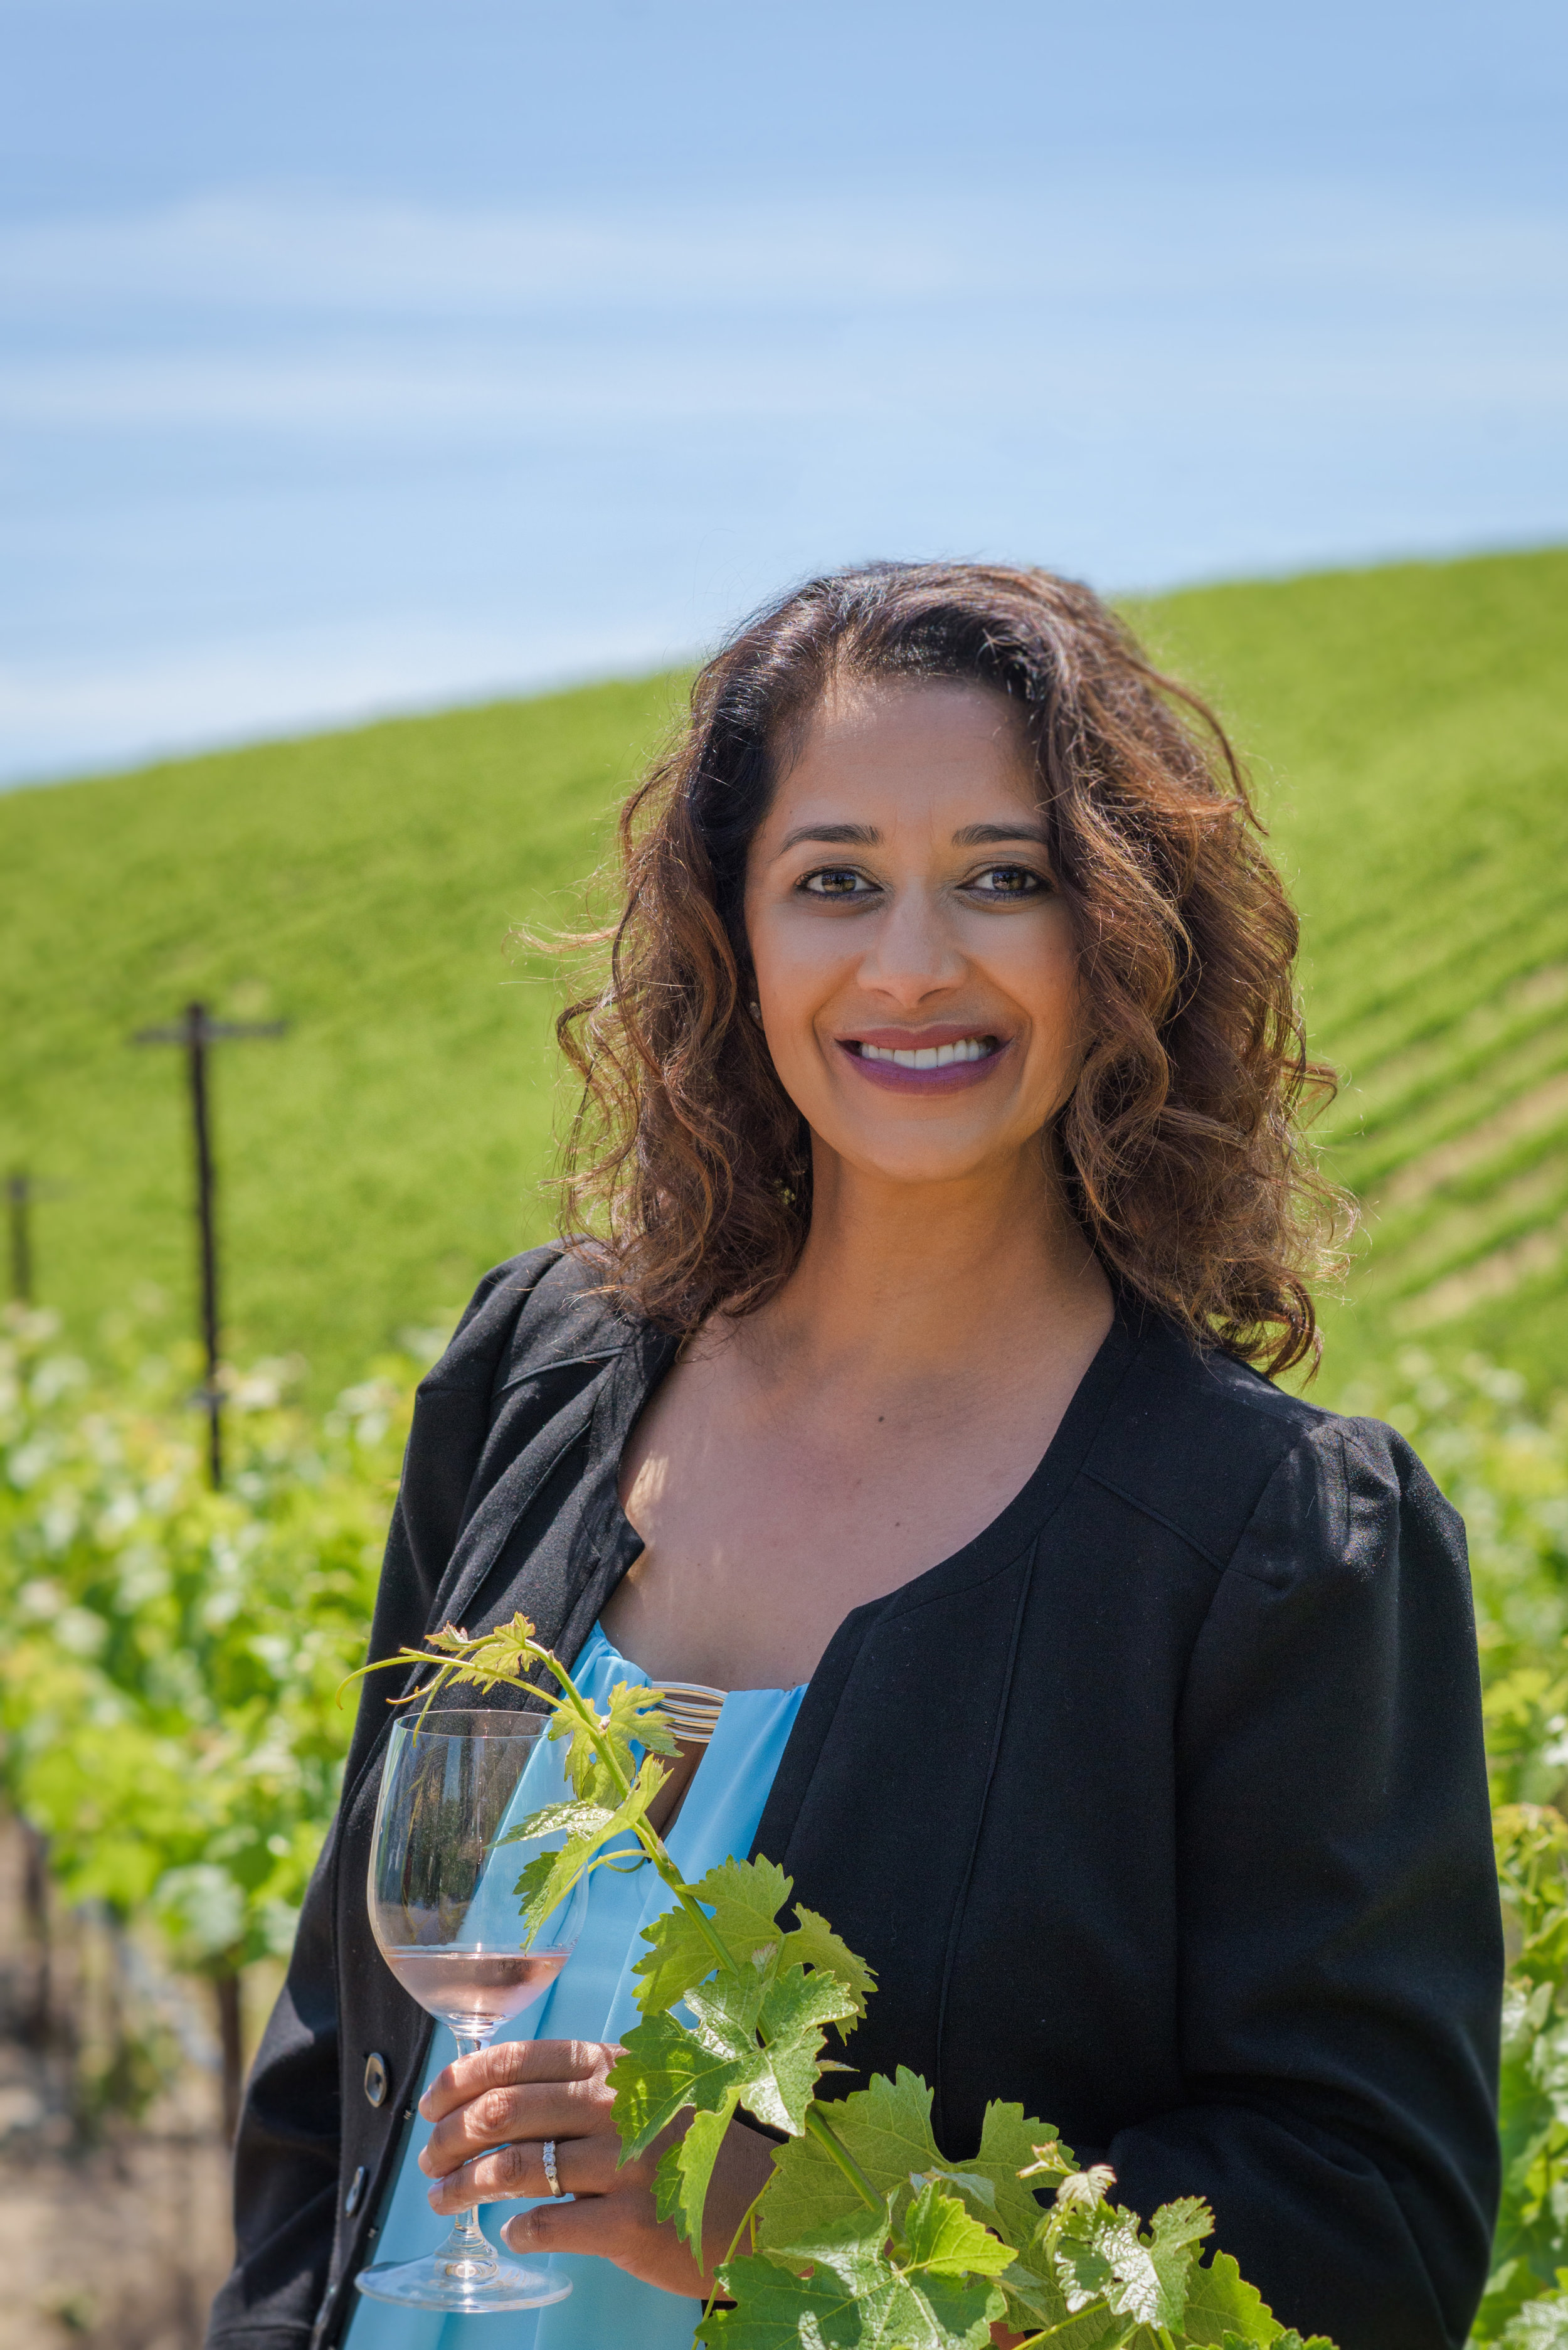 Branding and Headshot photography for luxury travel agent specializing in wine tasting vacations by bay area of San Francisco photographer Nina Pomeroy